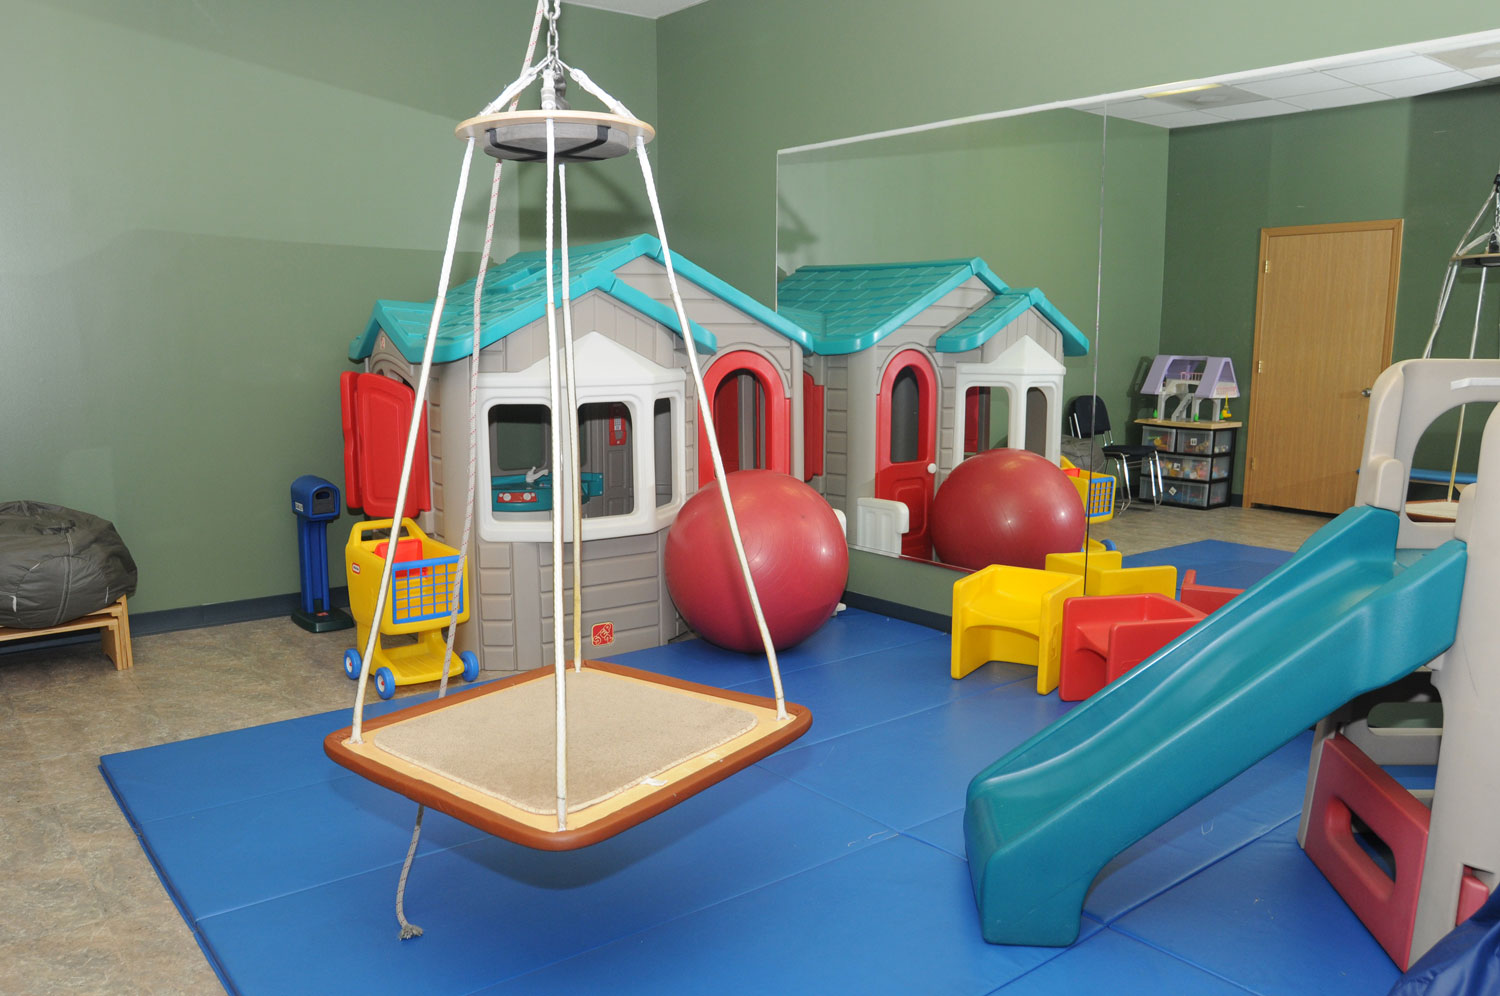 Butterfly Room:  with lots of different ways to play and learn